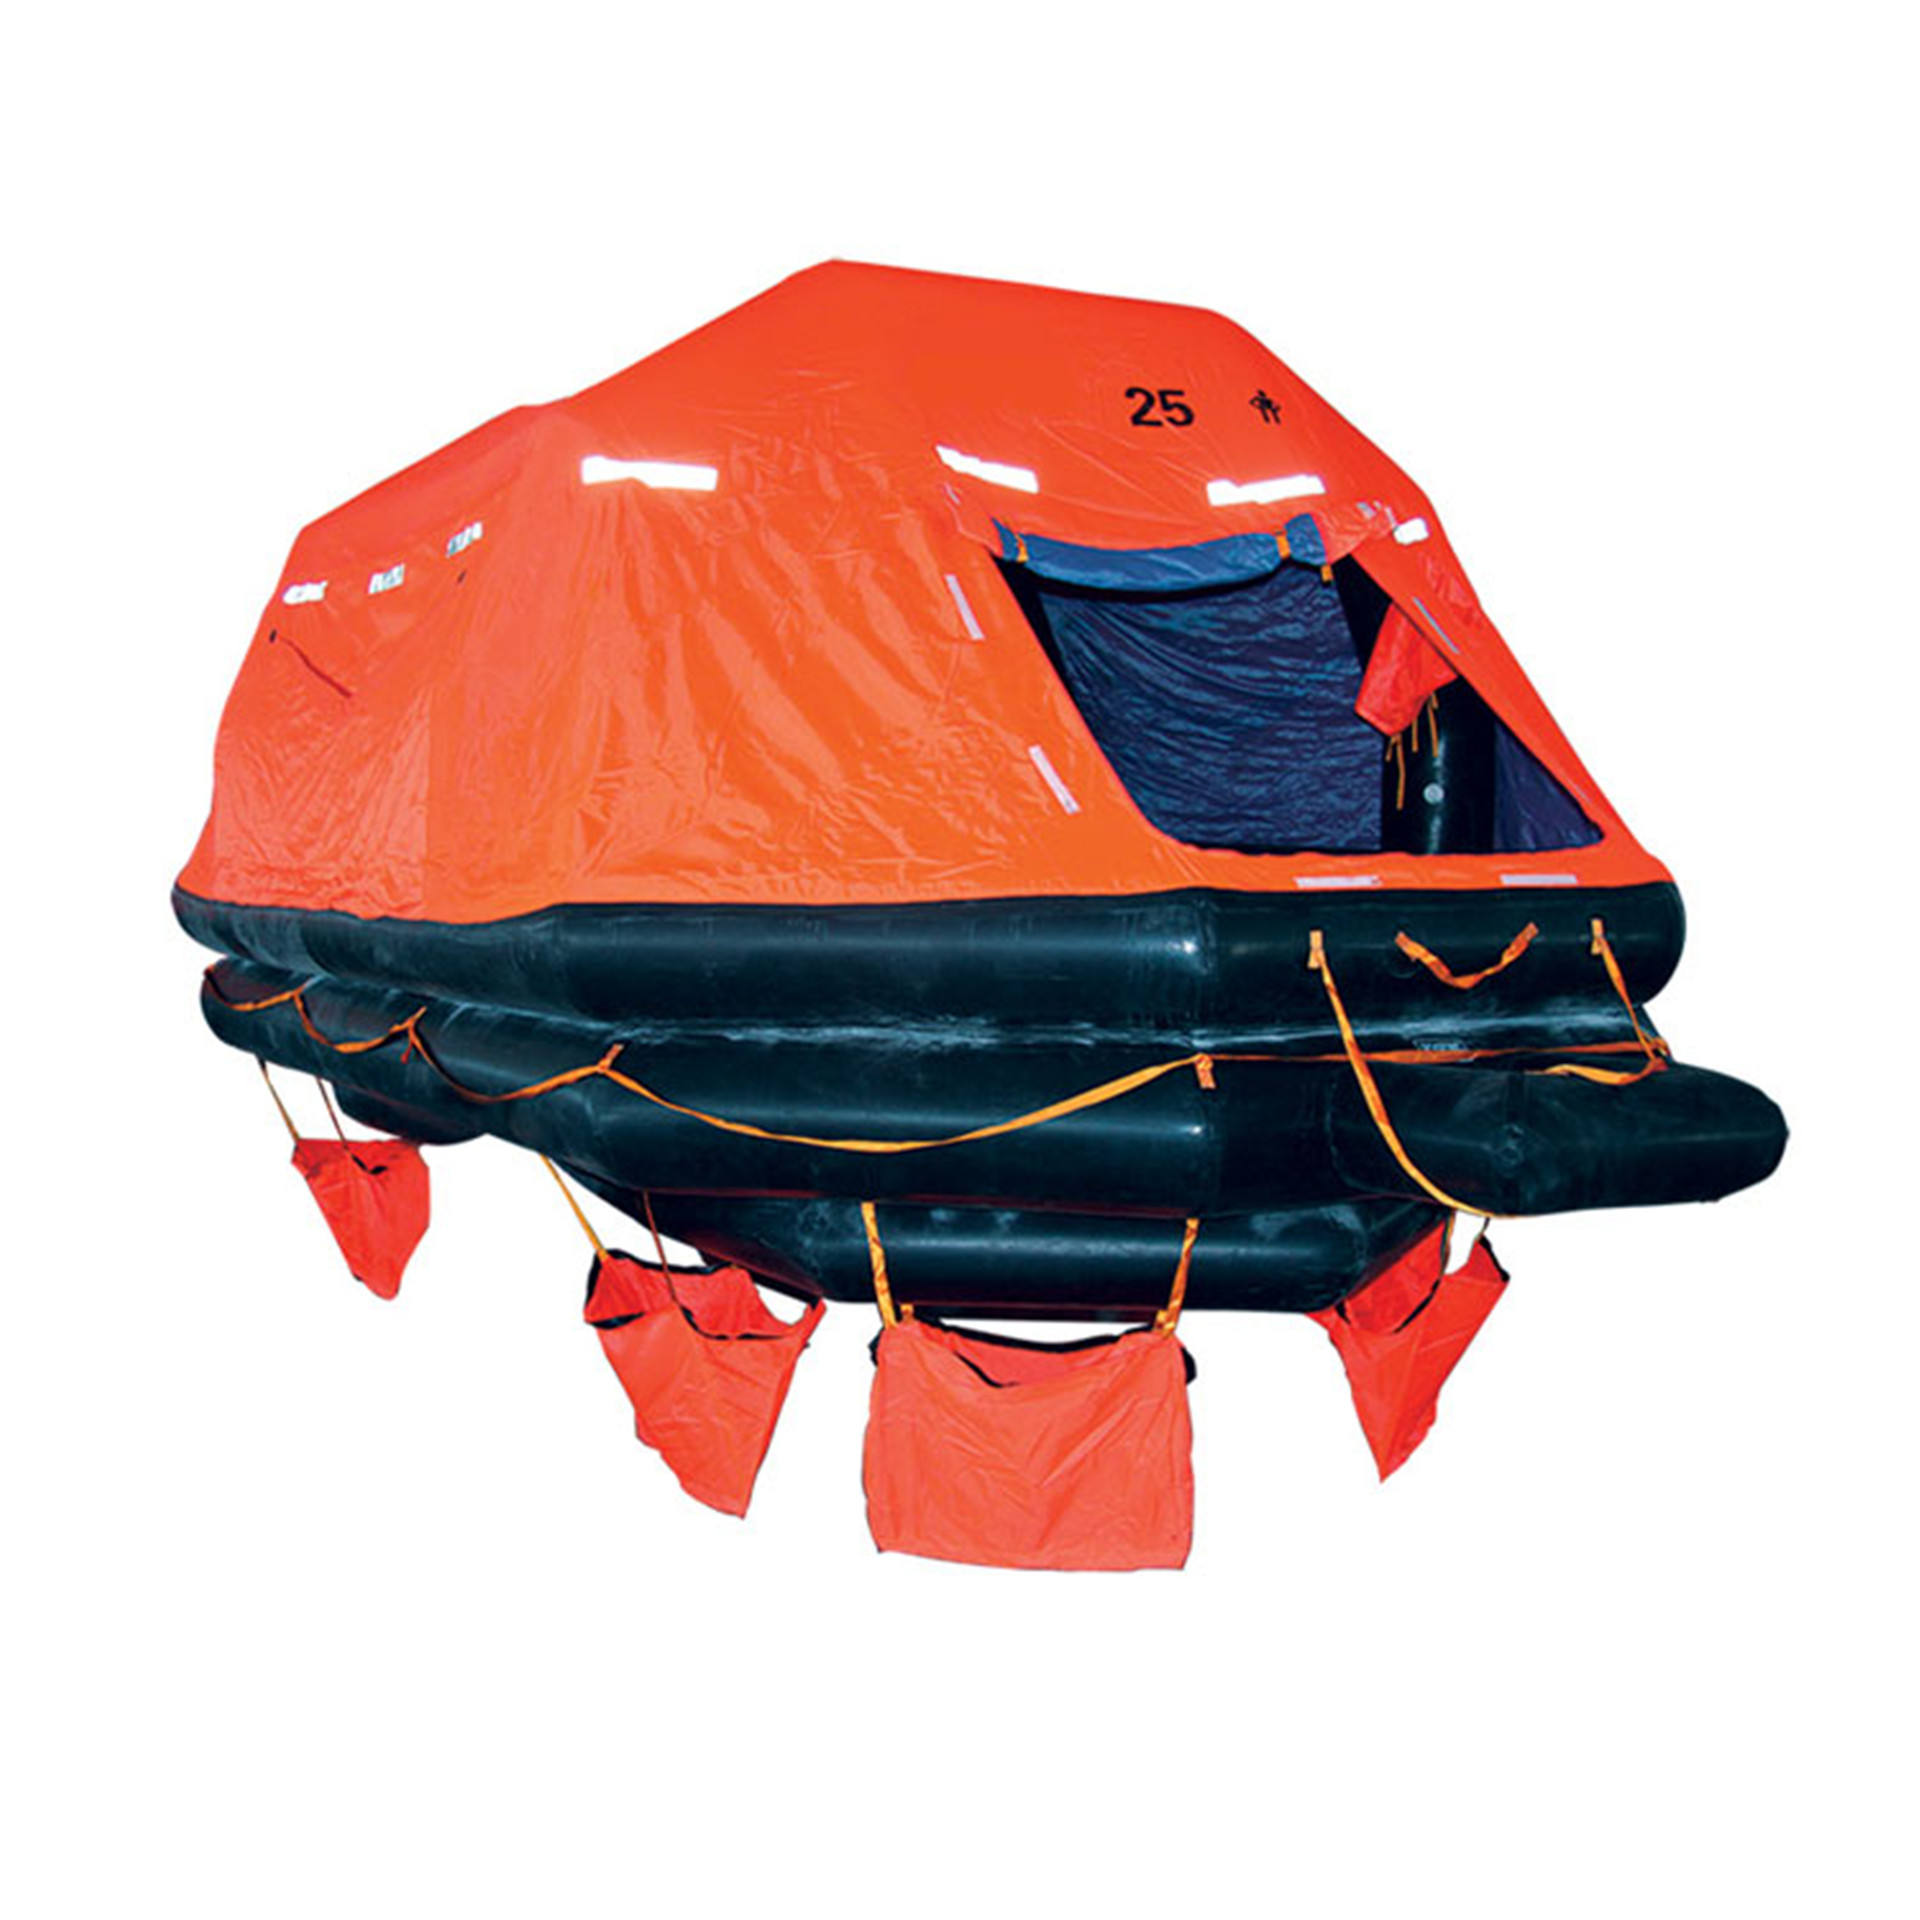 Wholesales 20 person Throw Overboard Inflatable Life Rafts